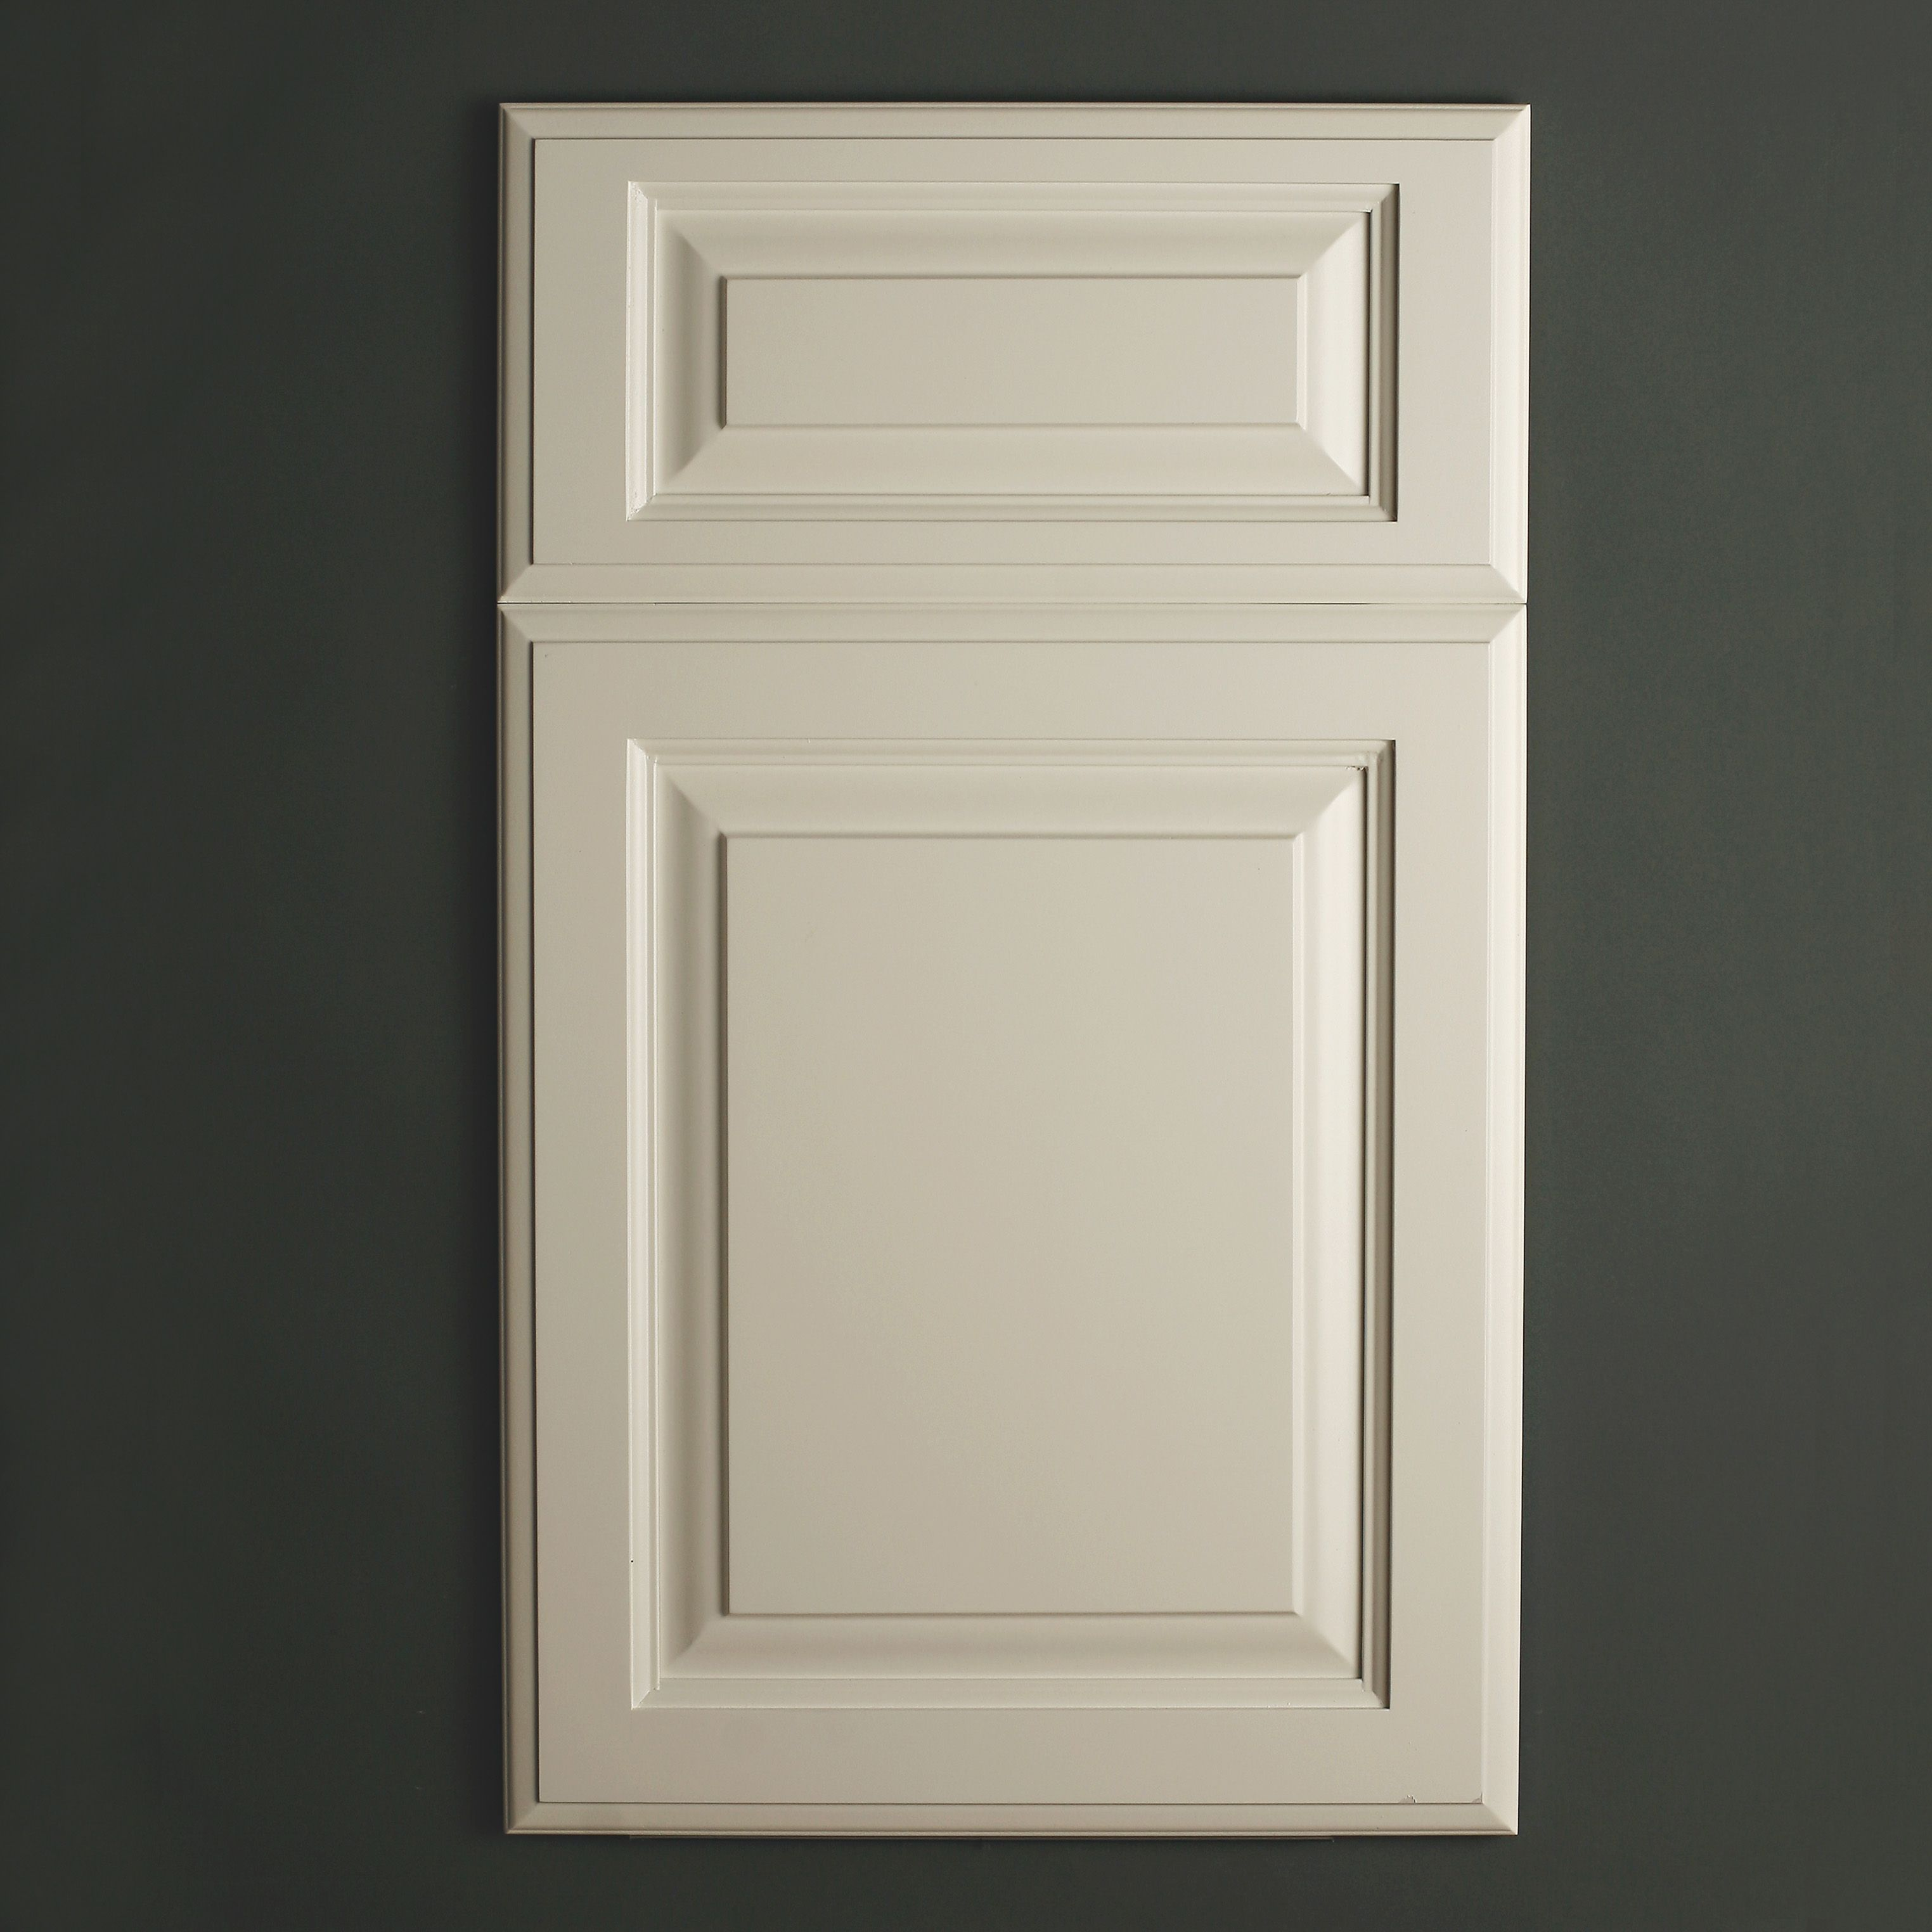 Le Meilleur Painted Raised Panel Cabinet Doors Choose From Our Ce Mois Ci